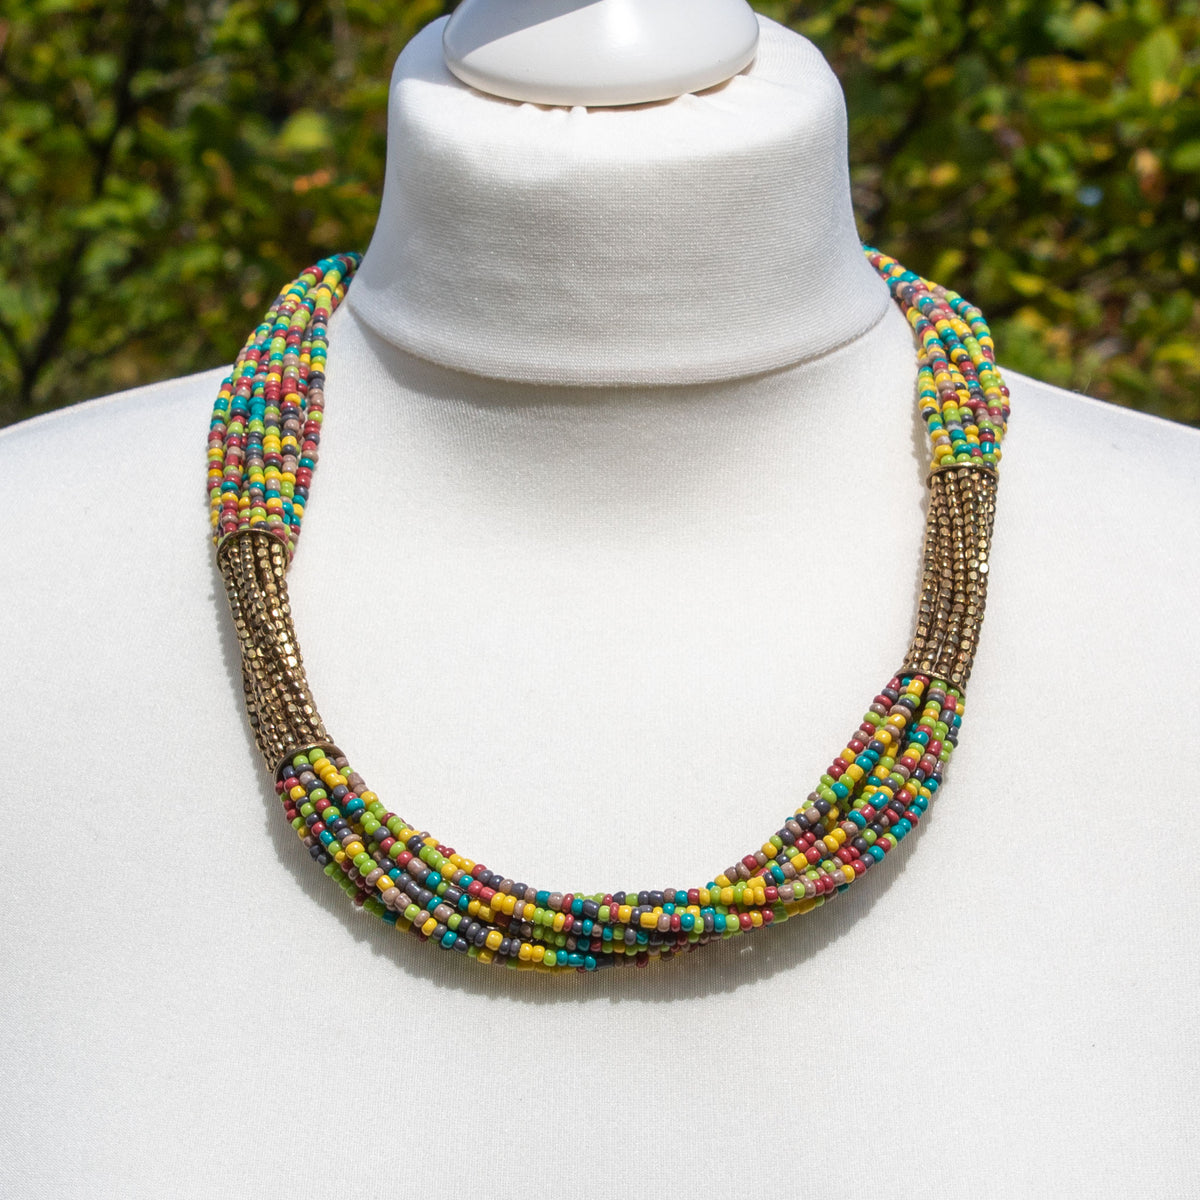 Gold & Multicoloured Glass Bead Necklace | Necklace - The Naughty Shrew